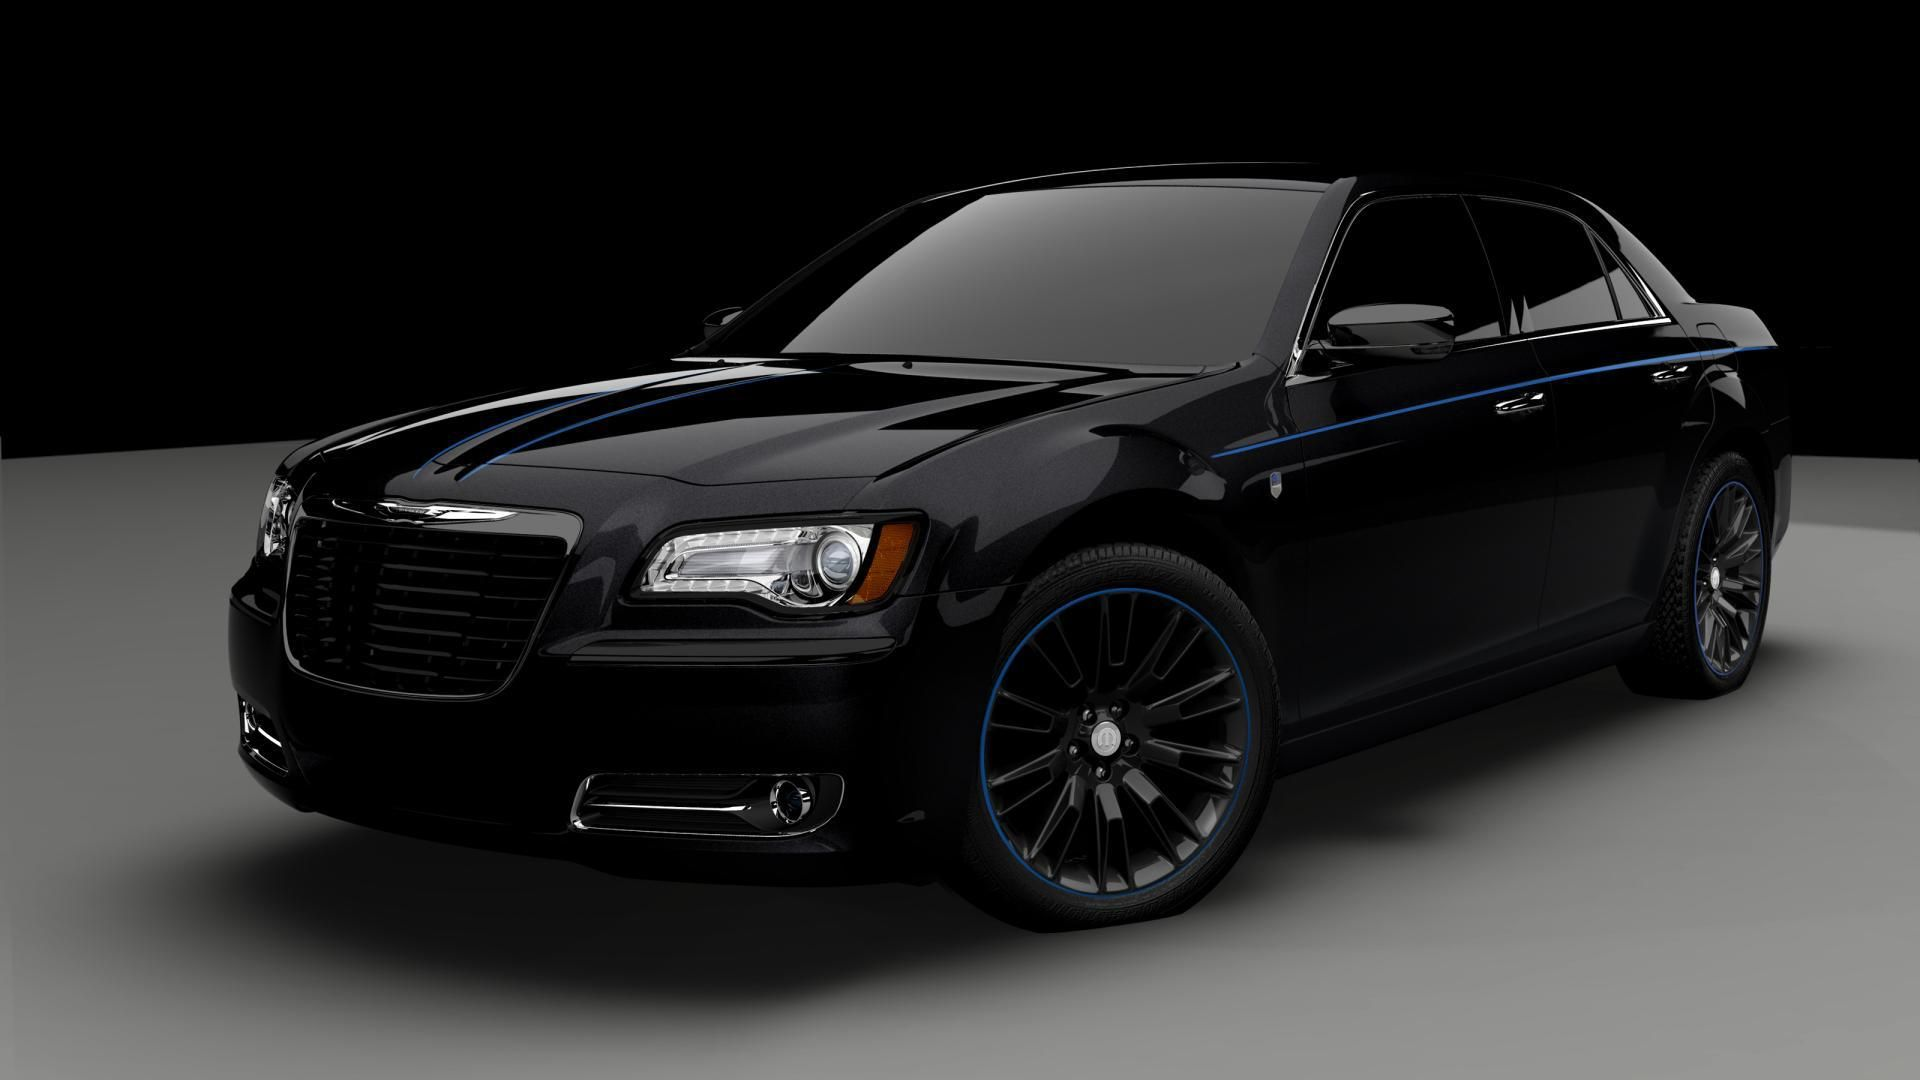 2020 Chrysler 300 Srt8 Hellcat Price And Specification Rumors